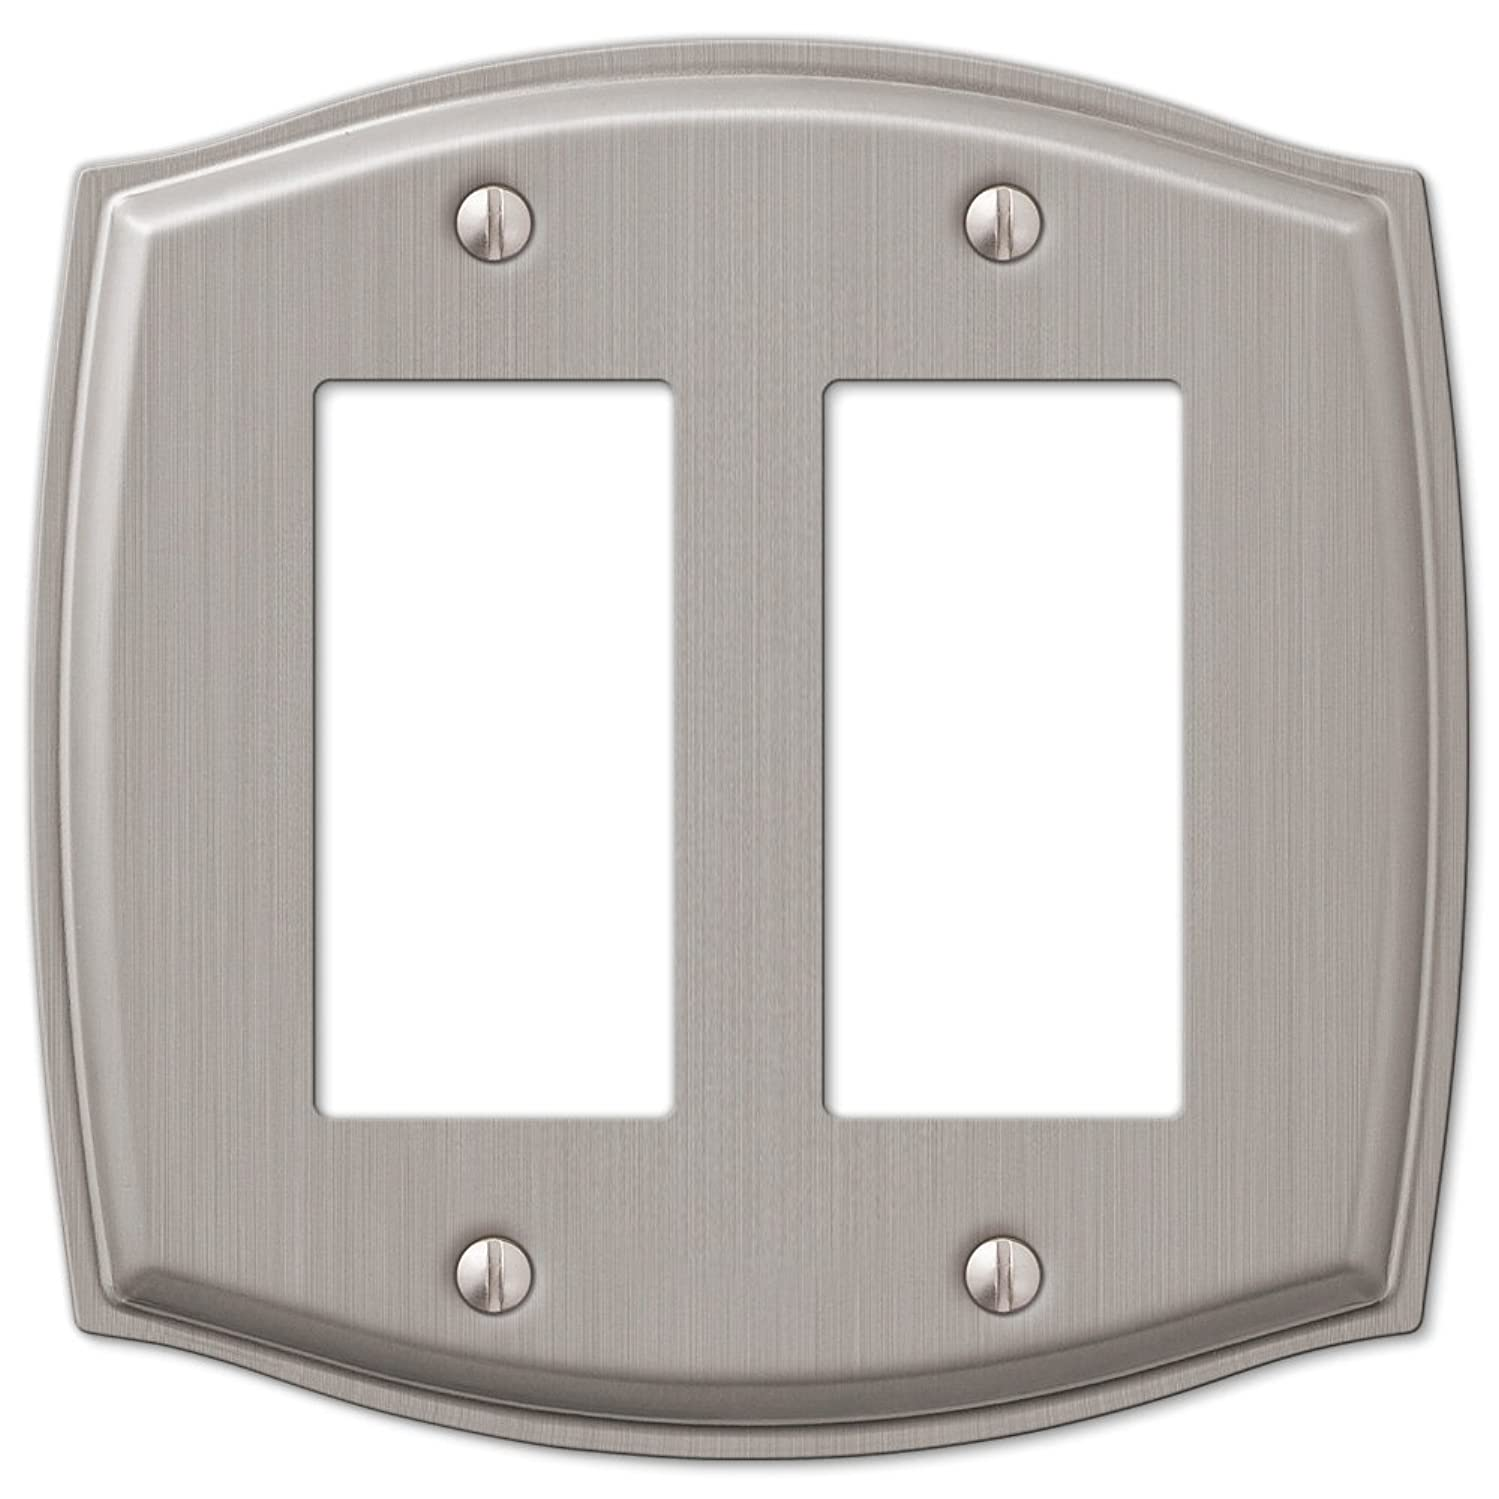 2 Rocker GFCI Wall Plate Cover - Brushed Nickel